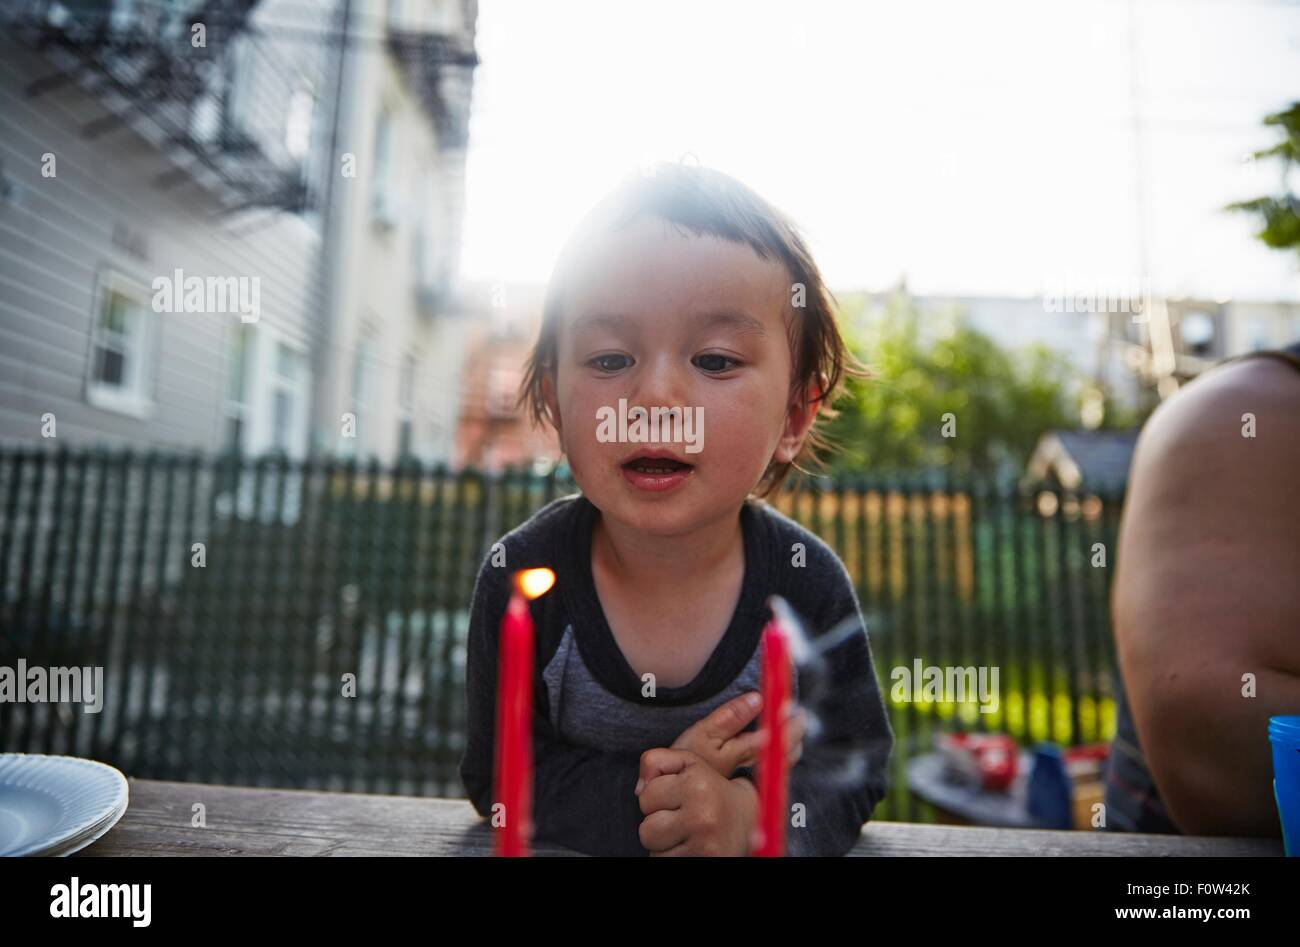 Boy looking at lit candle on dining table - Stock Image